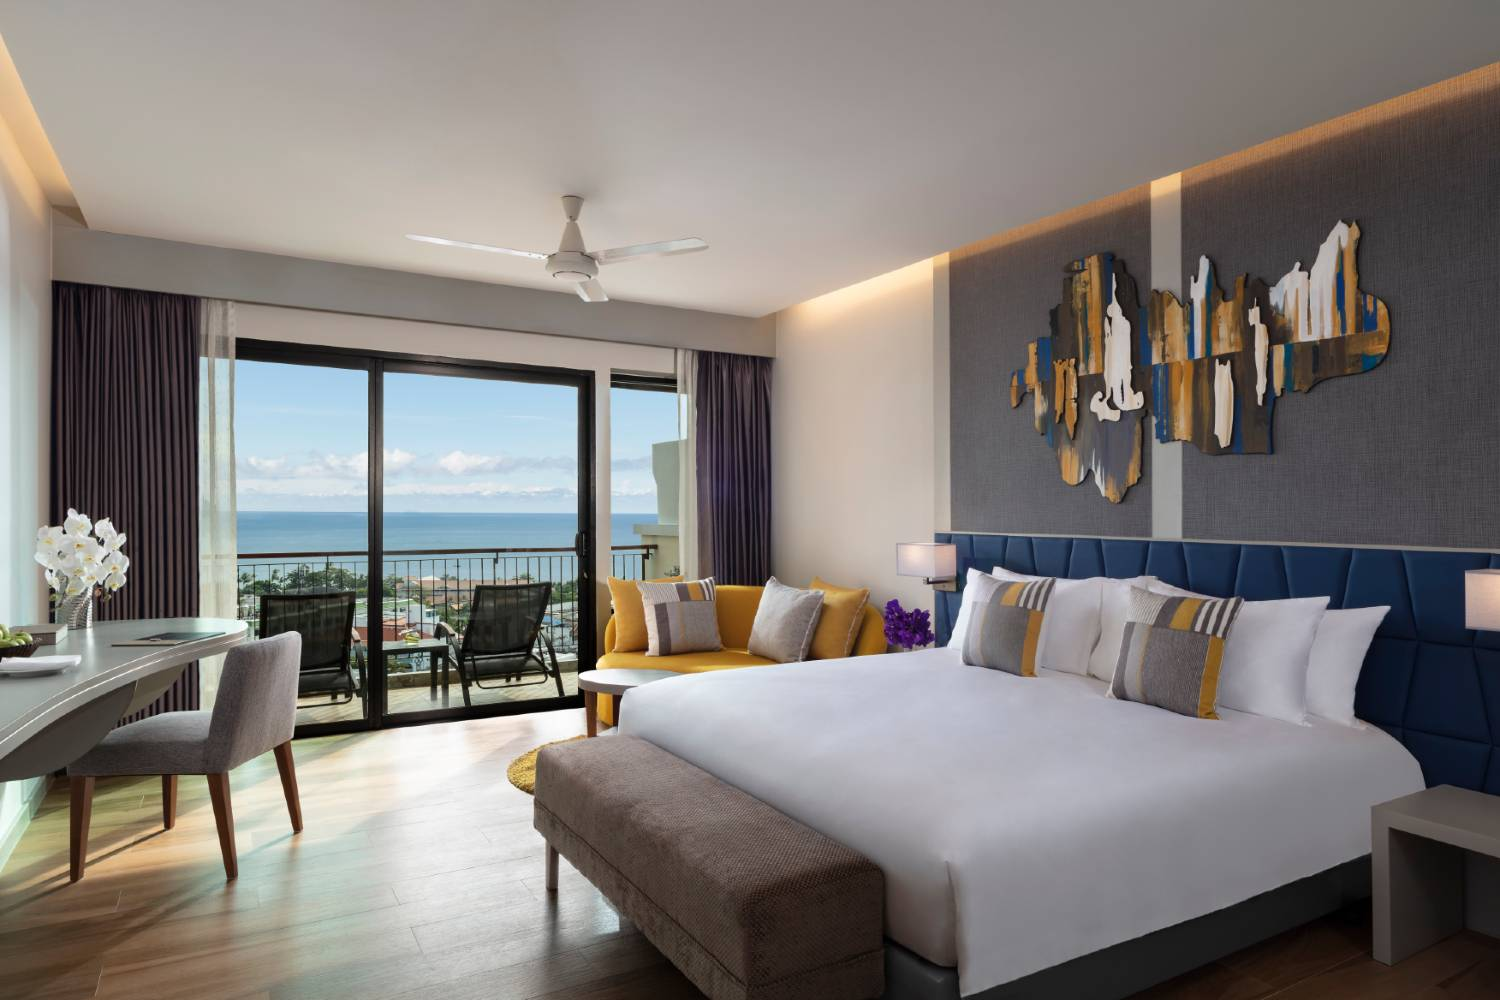 The Avani Superior Sea View Room of the Avani Ao Nang Cliff Krabi Resort